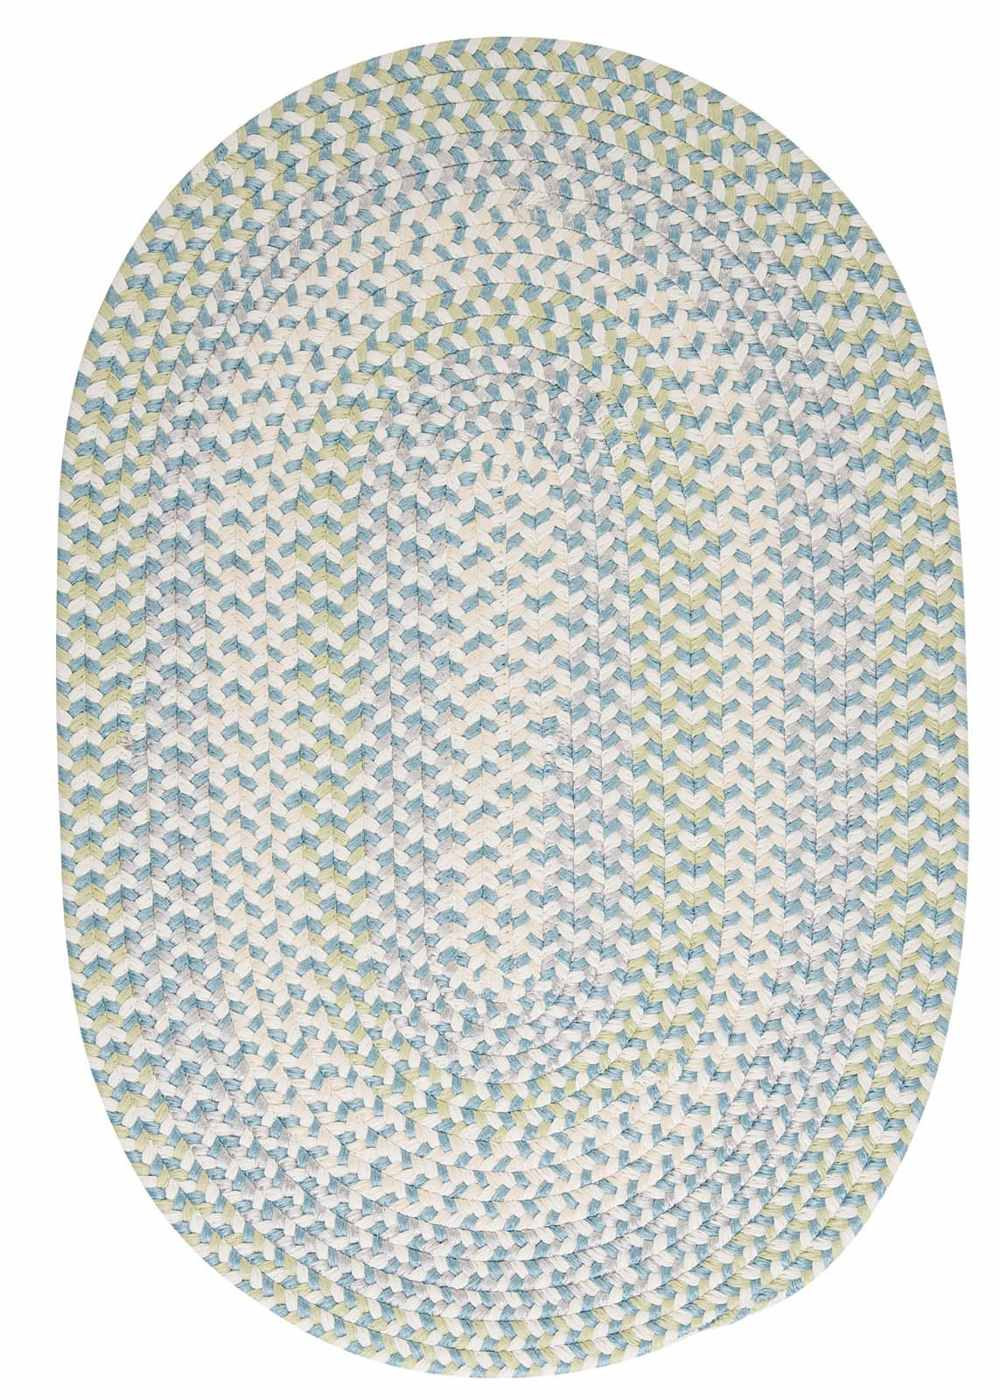 Super Area Rugs 8ft. x 11ft. Oval Indoor/Outdoor Reversible Braided Rug Sky High Color (8x11) at Sears.com